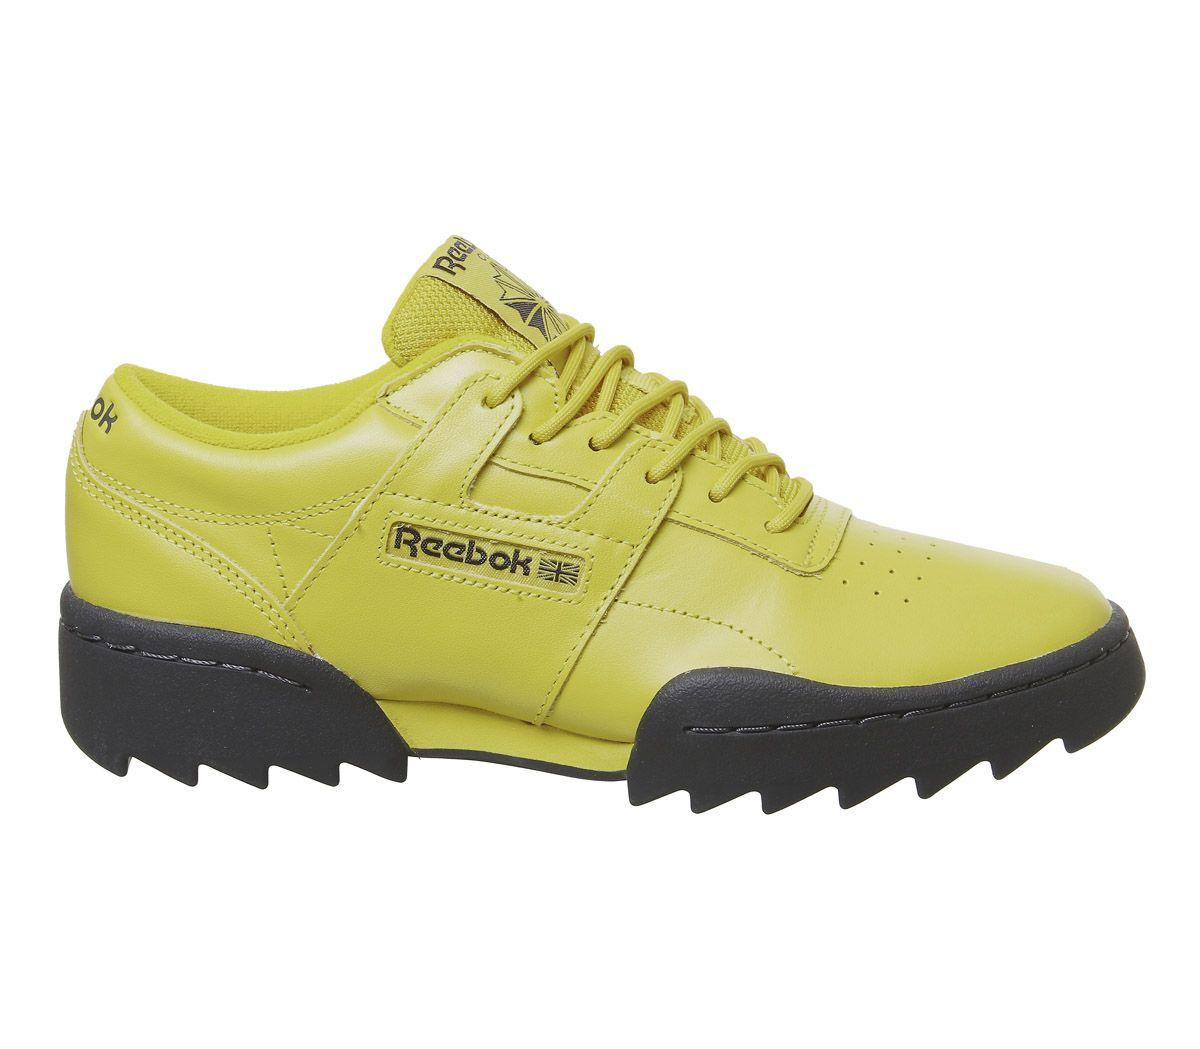 6c758ec26c596 Reebok - Yellow Workout Ripple Trainers for Men - Lyst. View fullscreen